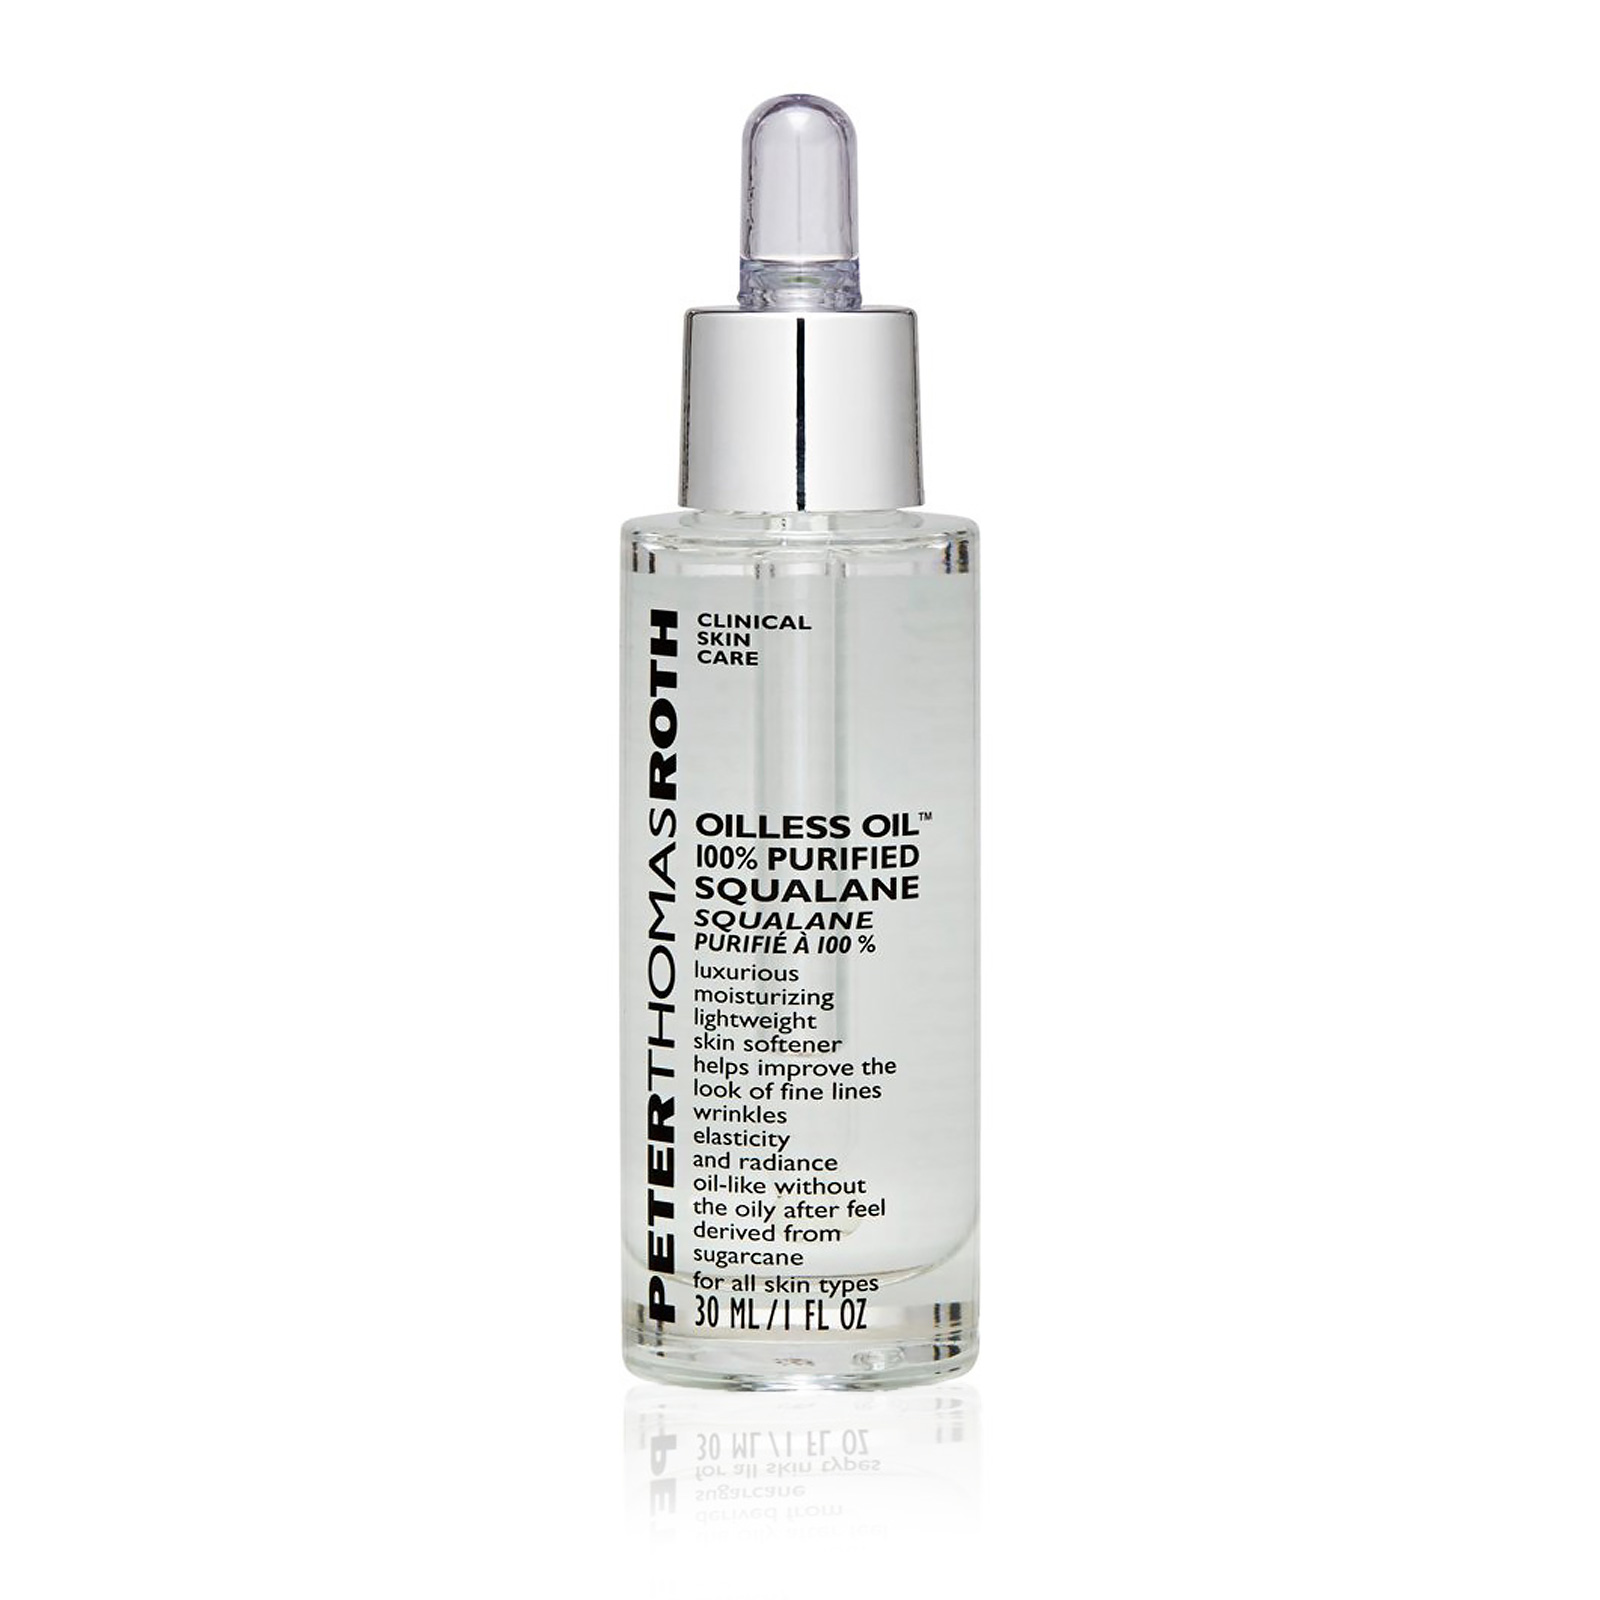 Oilless Oil 100% Purified Squalane (For All Skin Types)